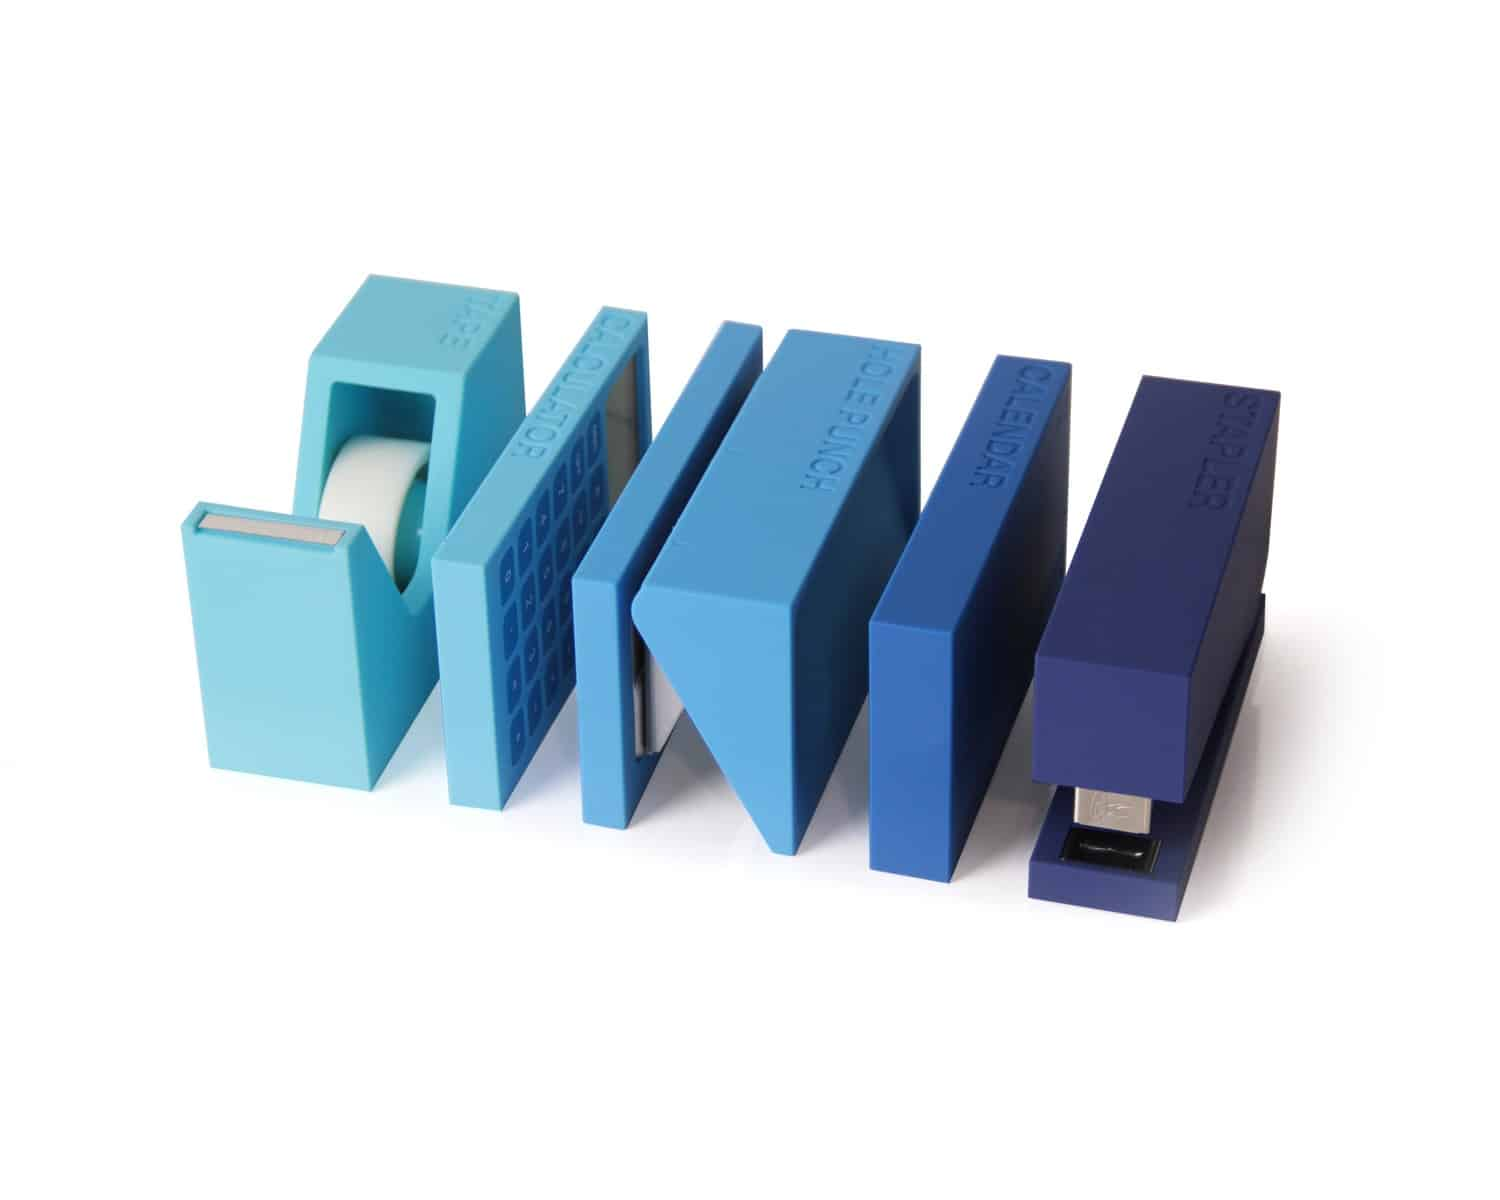 Lexon Buro Desk Accessories Set Noveltystreet